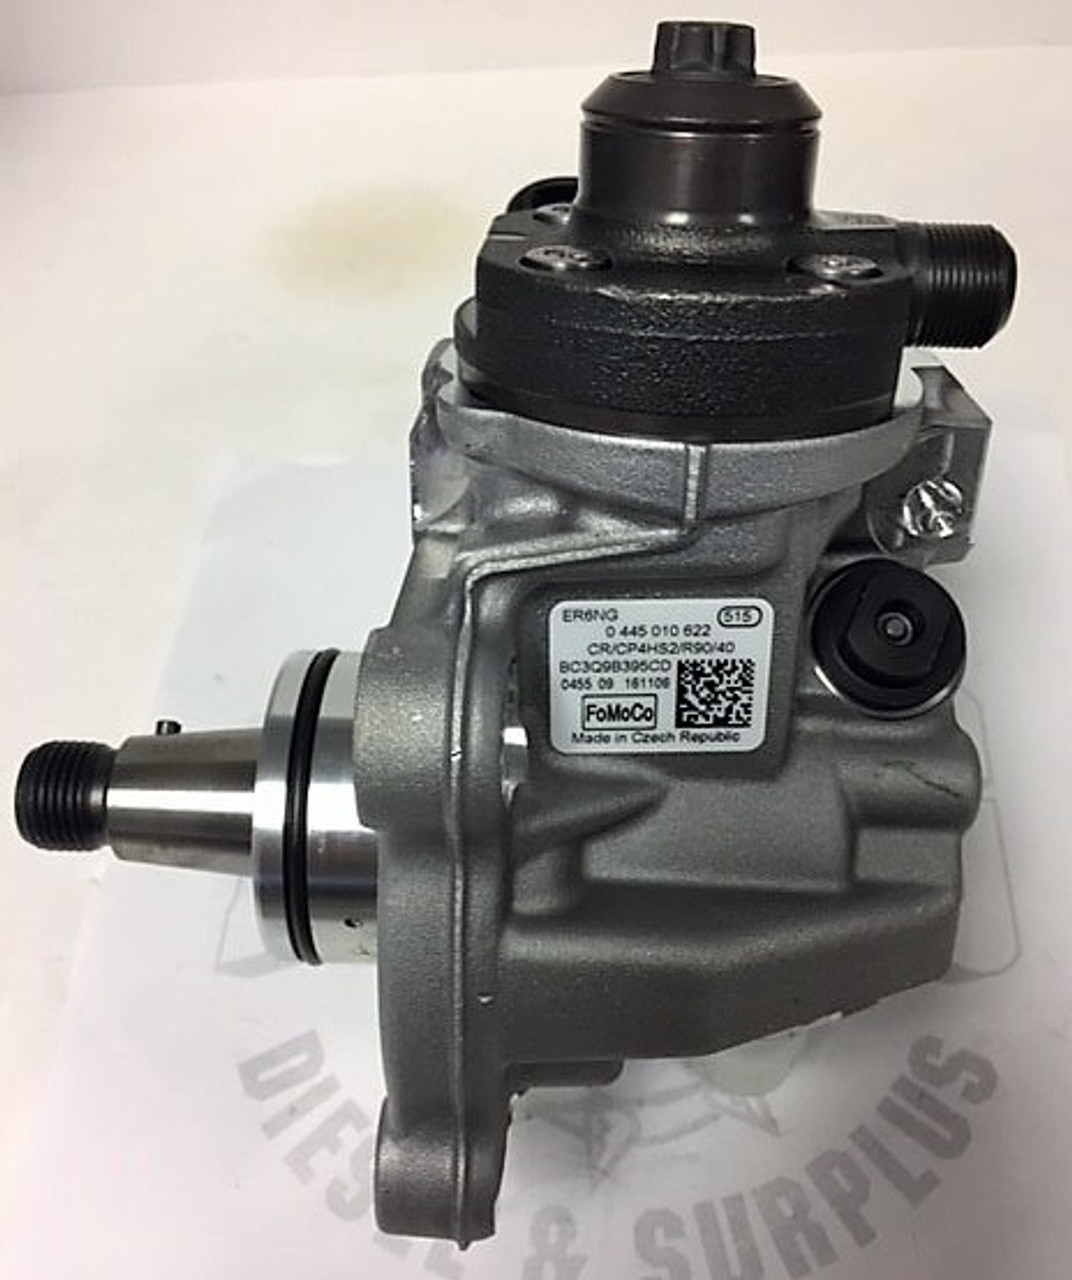 2011-2014 6.7 Powerstroke 6.7l CP4 Fuel Injection Pump 0445010622